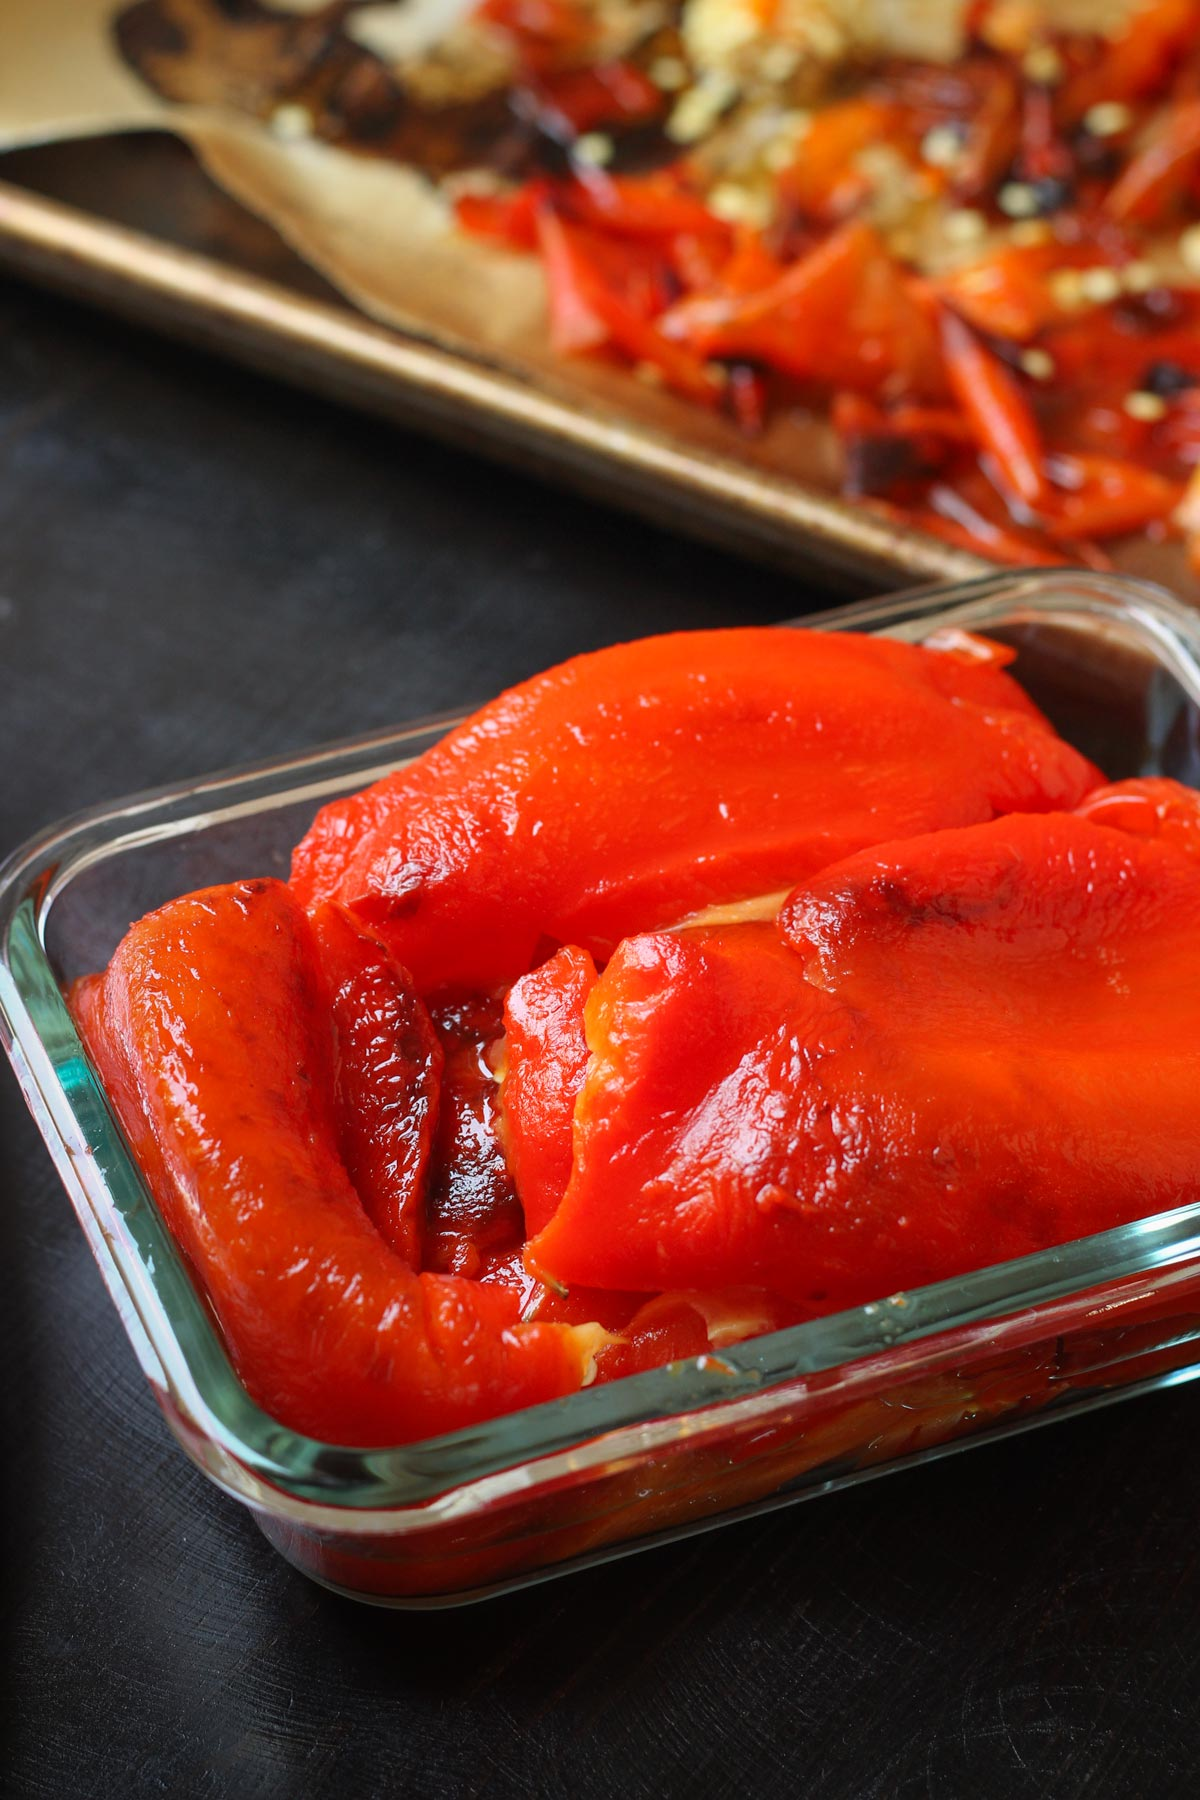 peeled and roasted red peppers in a small glass storage container.